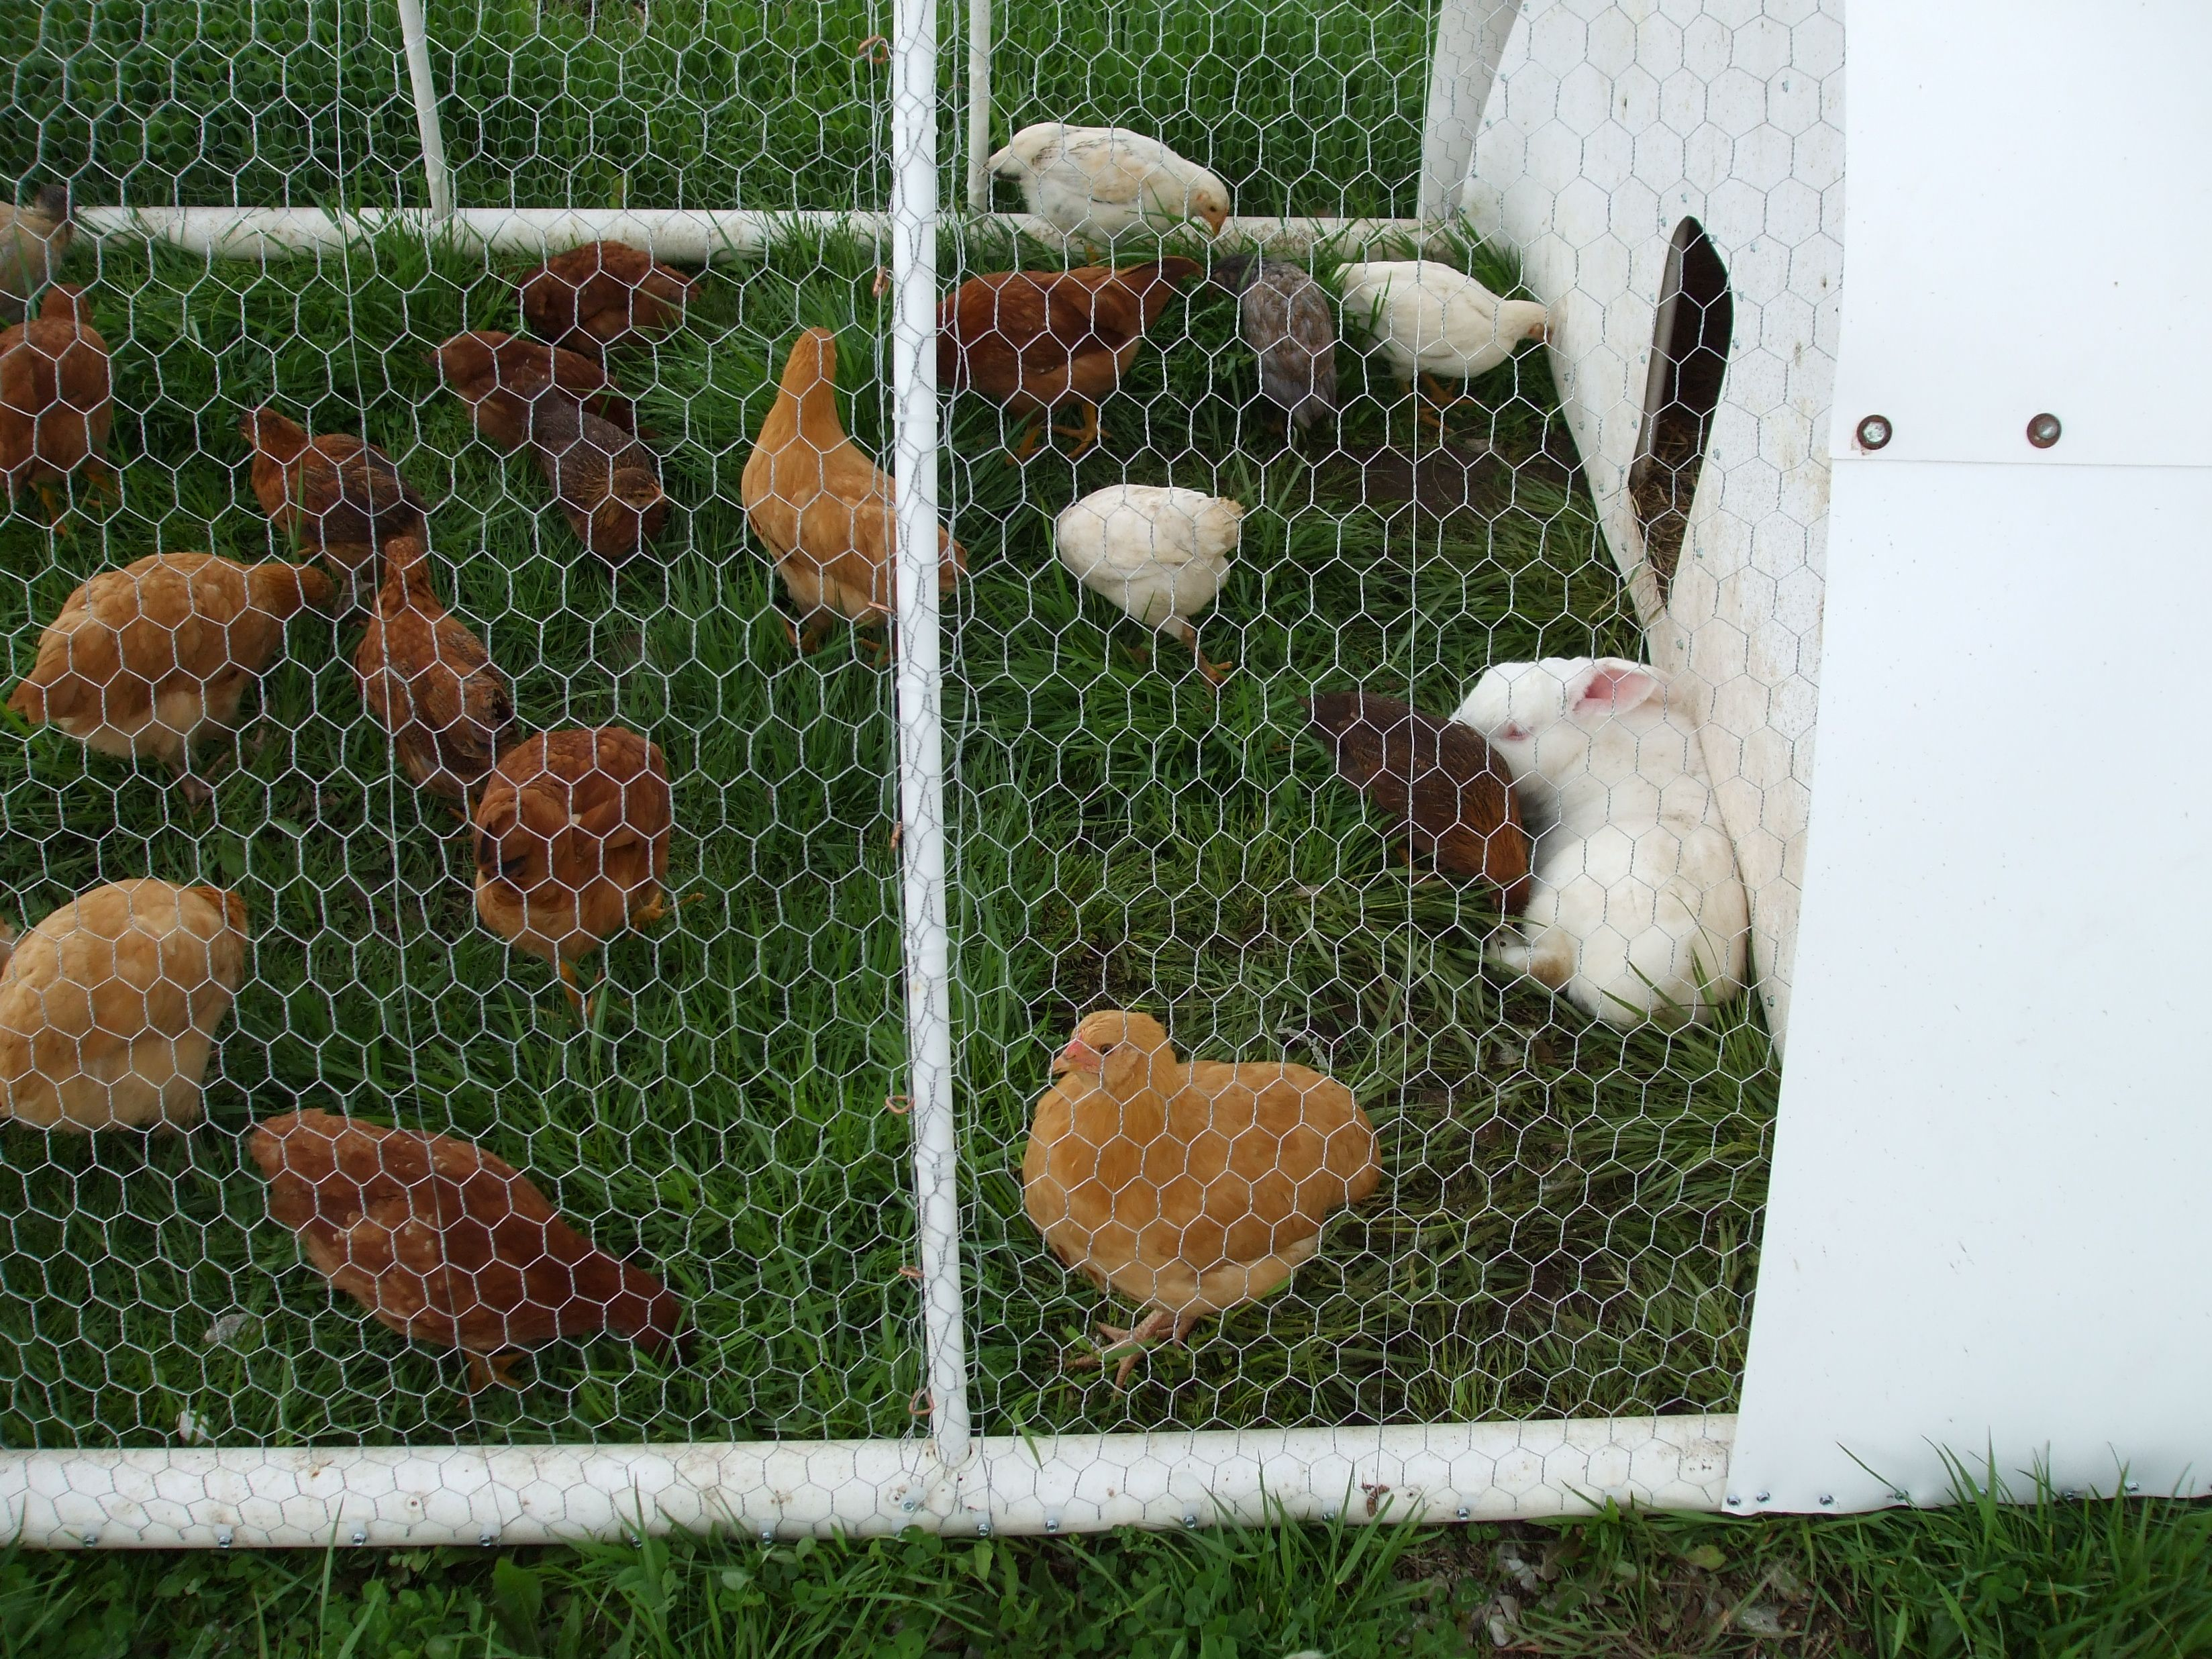 Raising Chickens and Rabbits together  Co housing